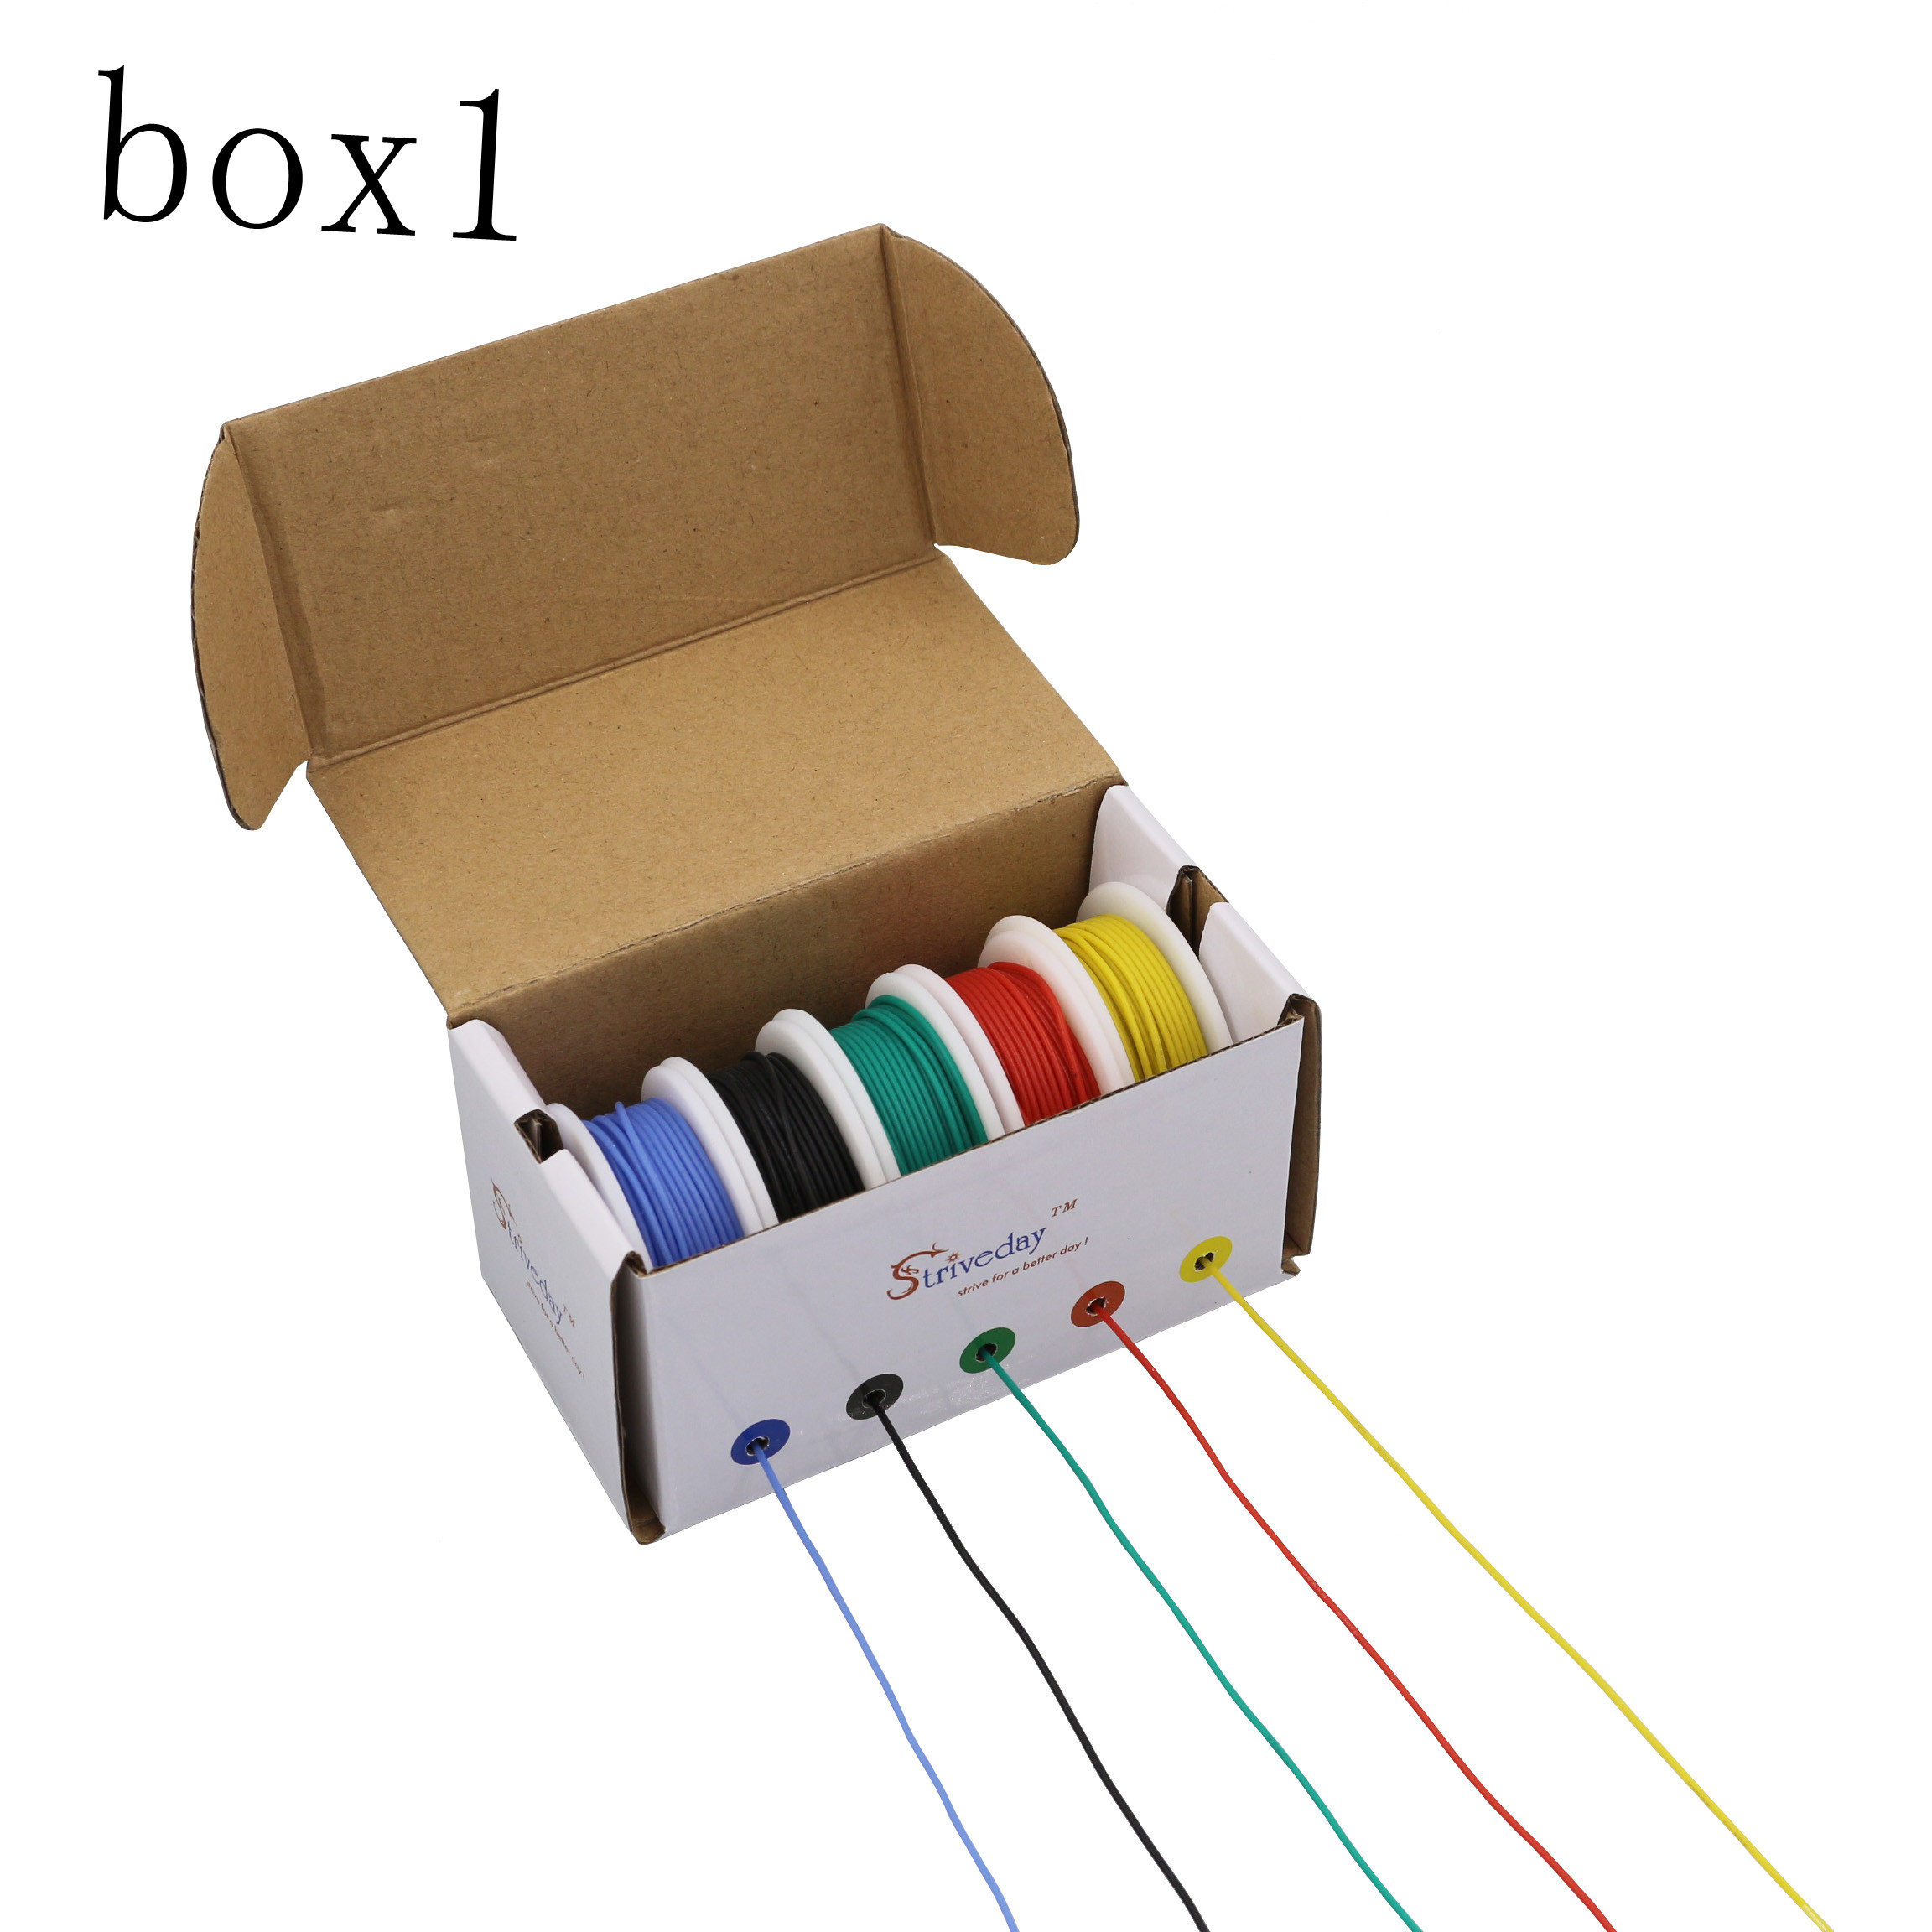 30m 20AWG Flexible Silicone Wire Cable 5 color Mix box 1 box 2 package Electrical Wire Line Copper30m 20AWG Flexible Silicone Wire Cable 5 color Mix box 1 box 2 package Electrical Wire Line Copper